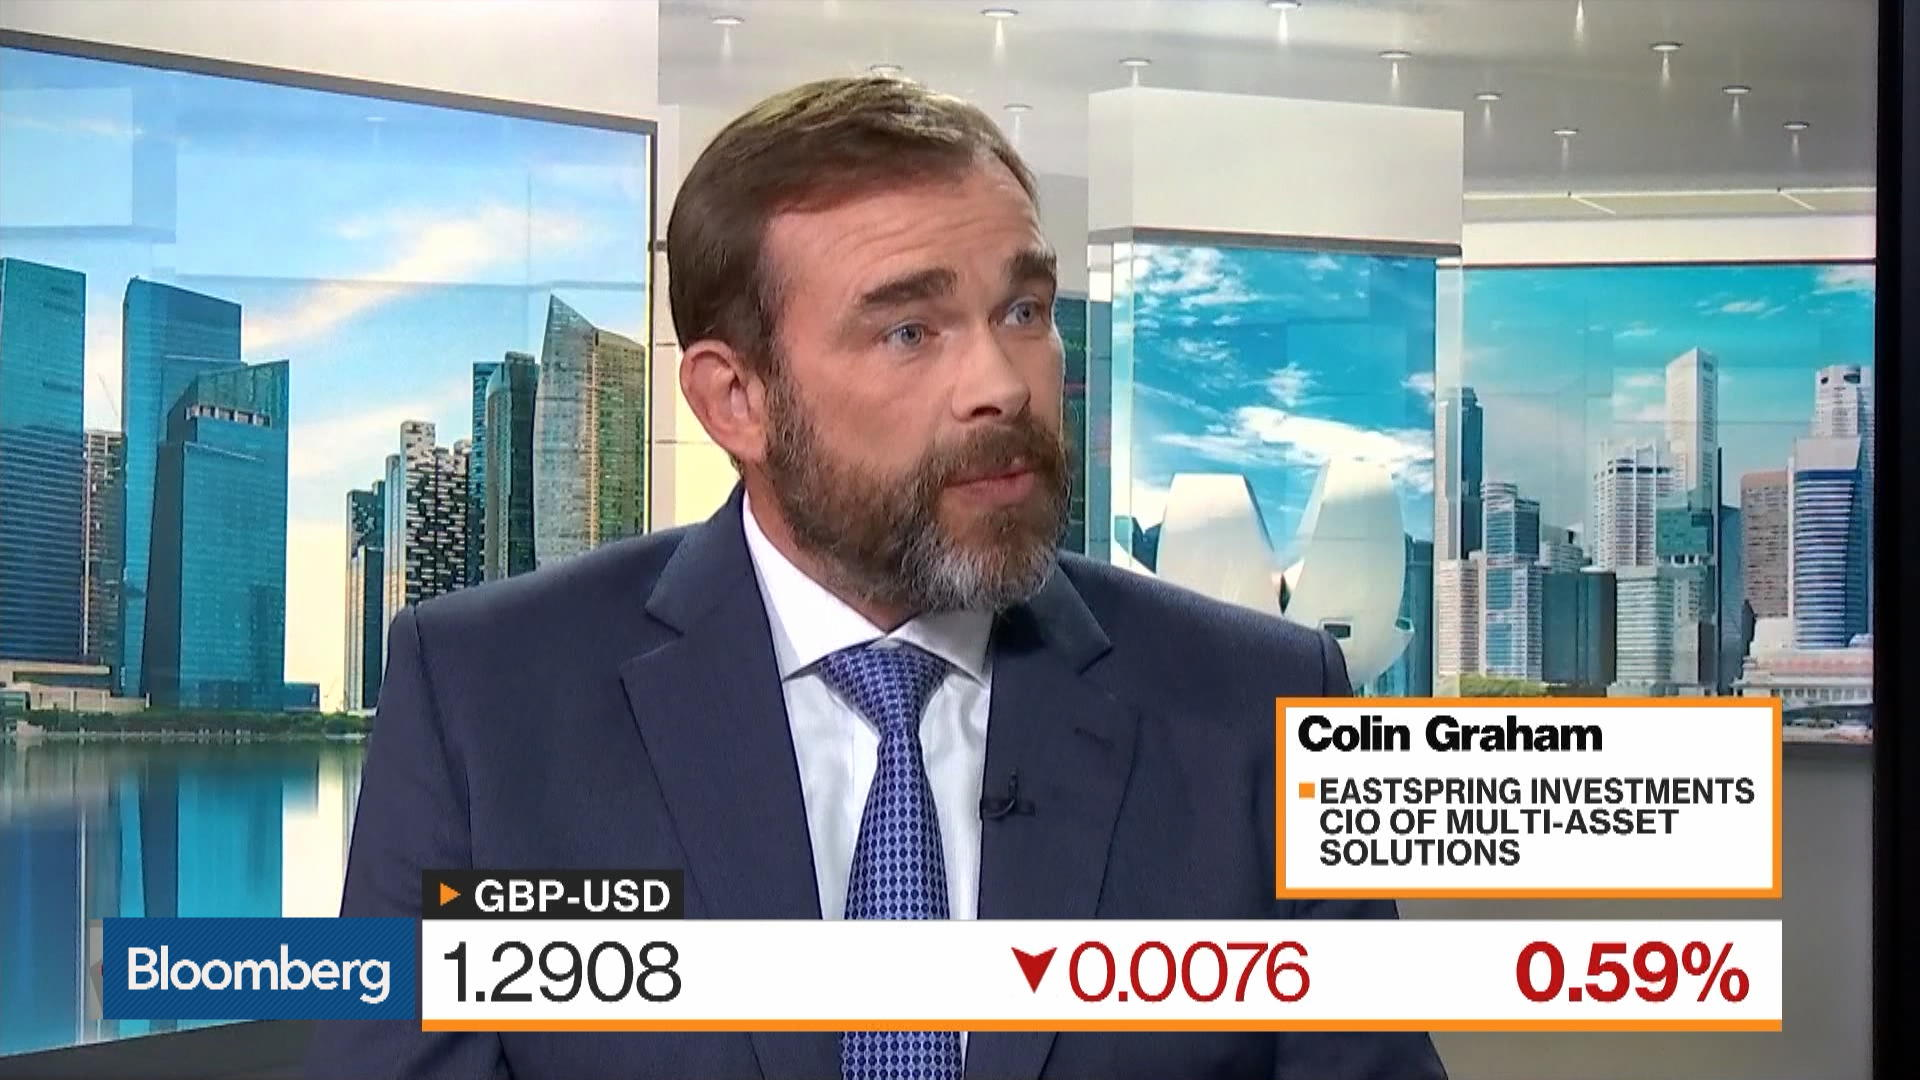 Eastspring Investments CIO of Multi-Asset Solutions Colin Graham on Brexit, Pound, Market Outlook